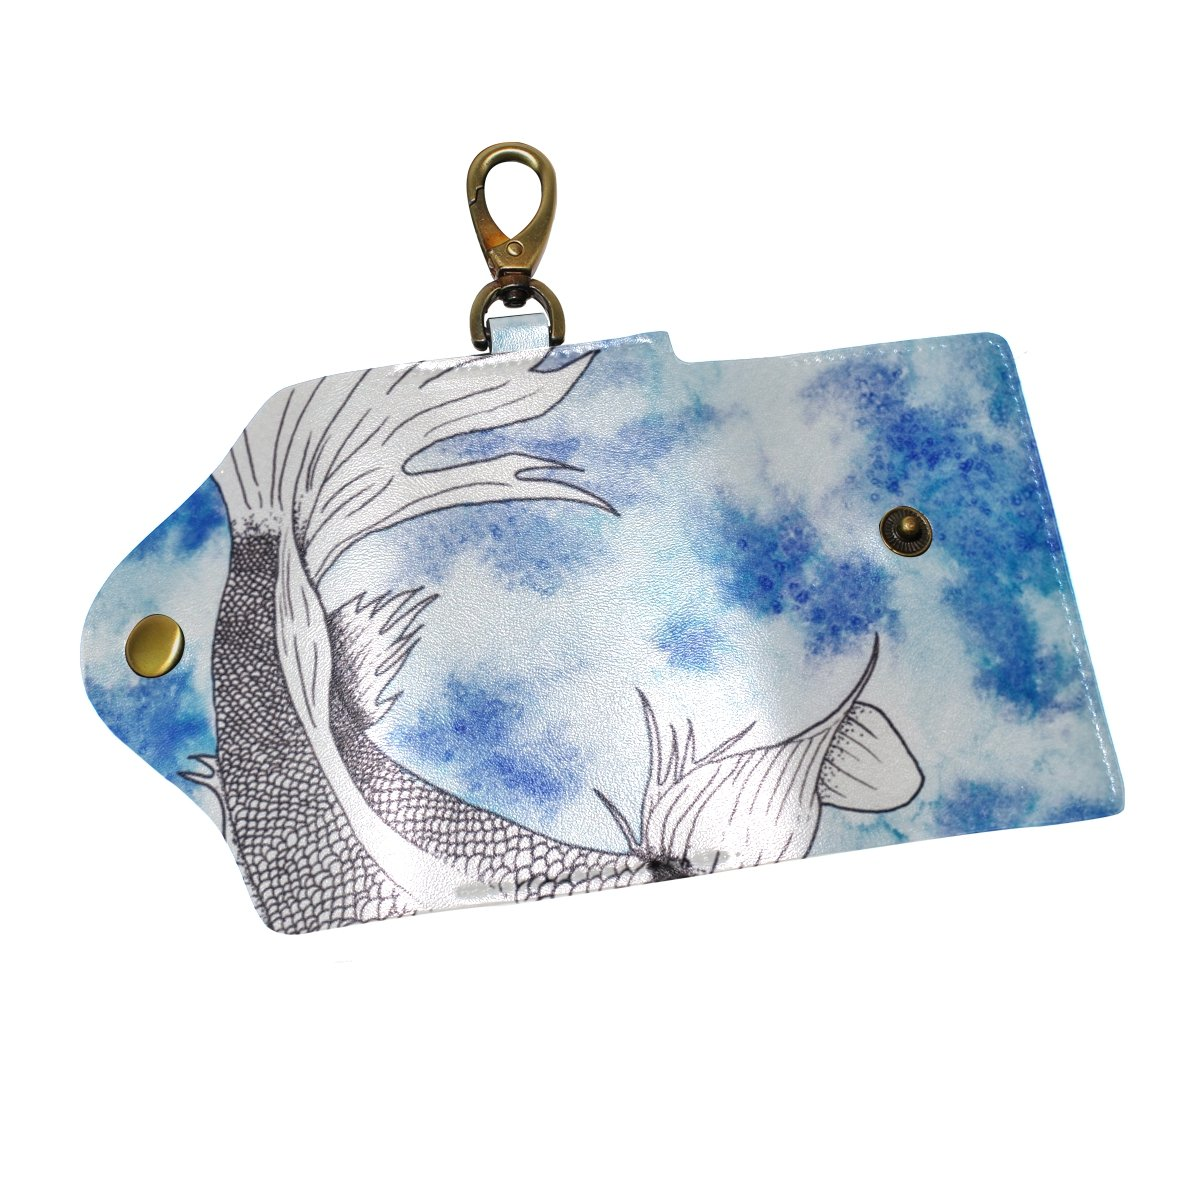 DEYYA Animal Fish Carp Koi Leather Key Case Wallets Unisex Keychain Key Holder with 6 Hooks Snap Closure